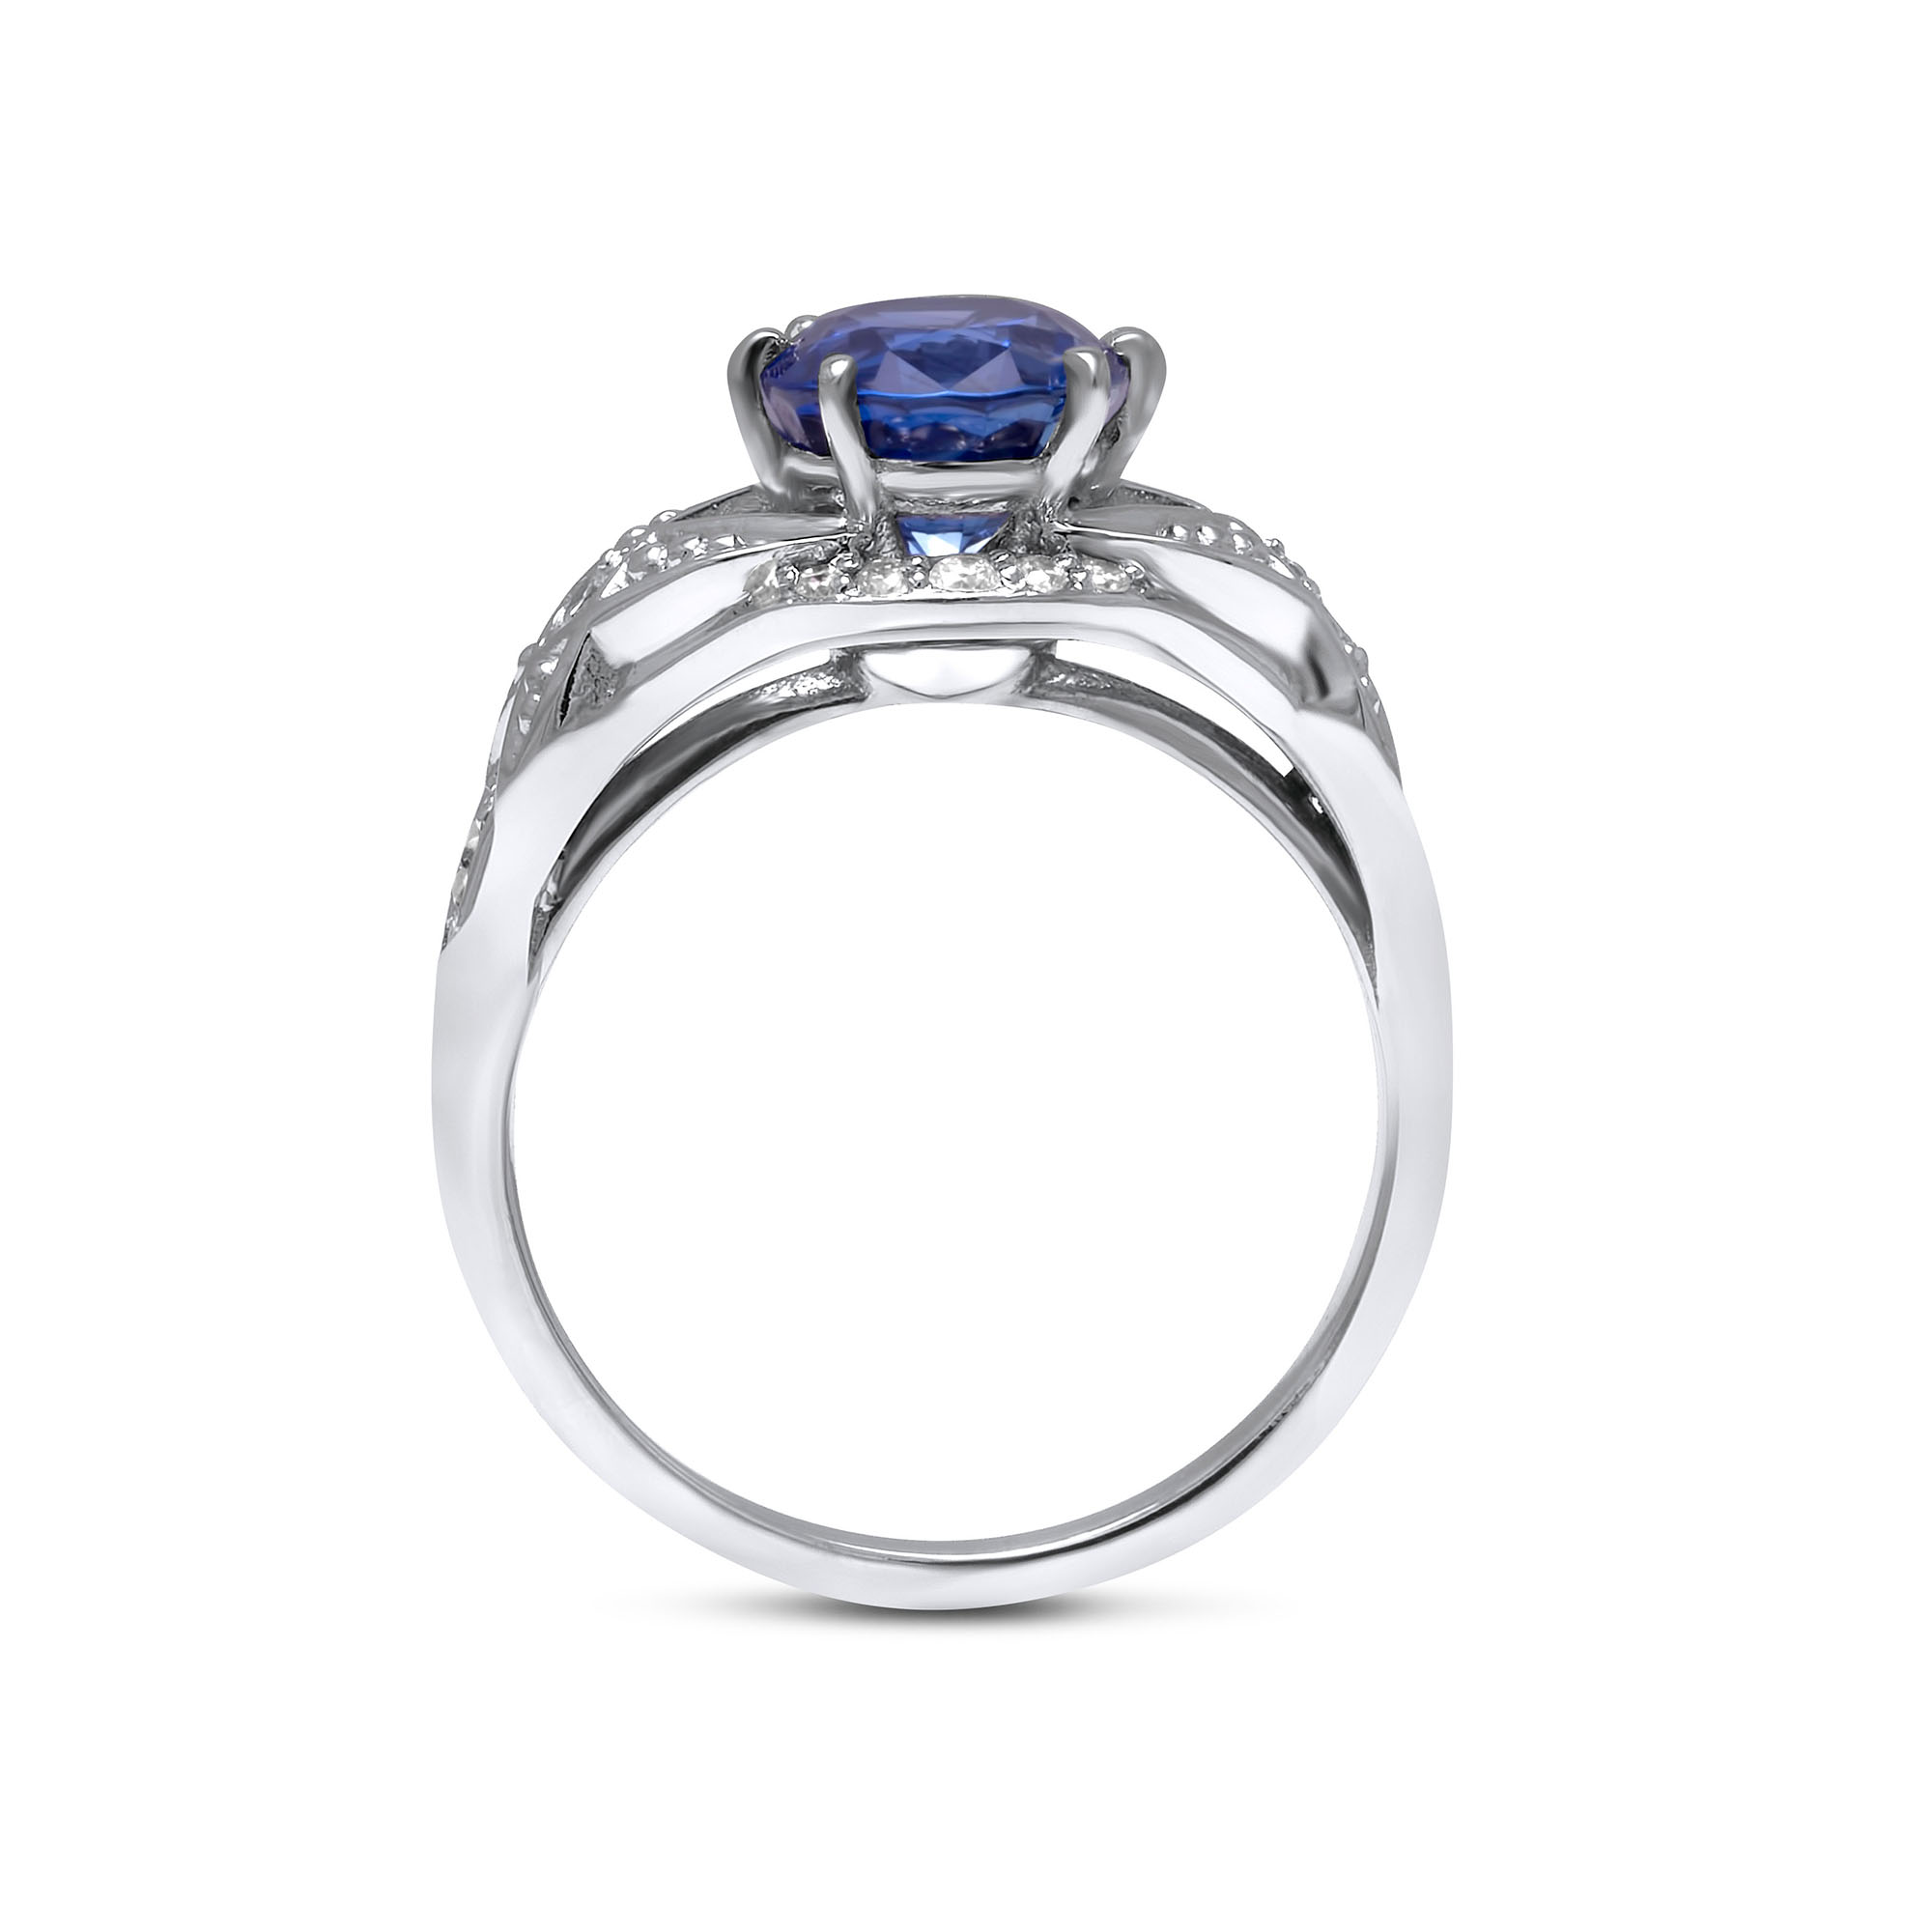 Oval Sapphire Engagement Ring Oval Cut Blue Sapphire Engagement Ring 14K White Gold Art Deco Ring